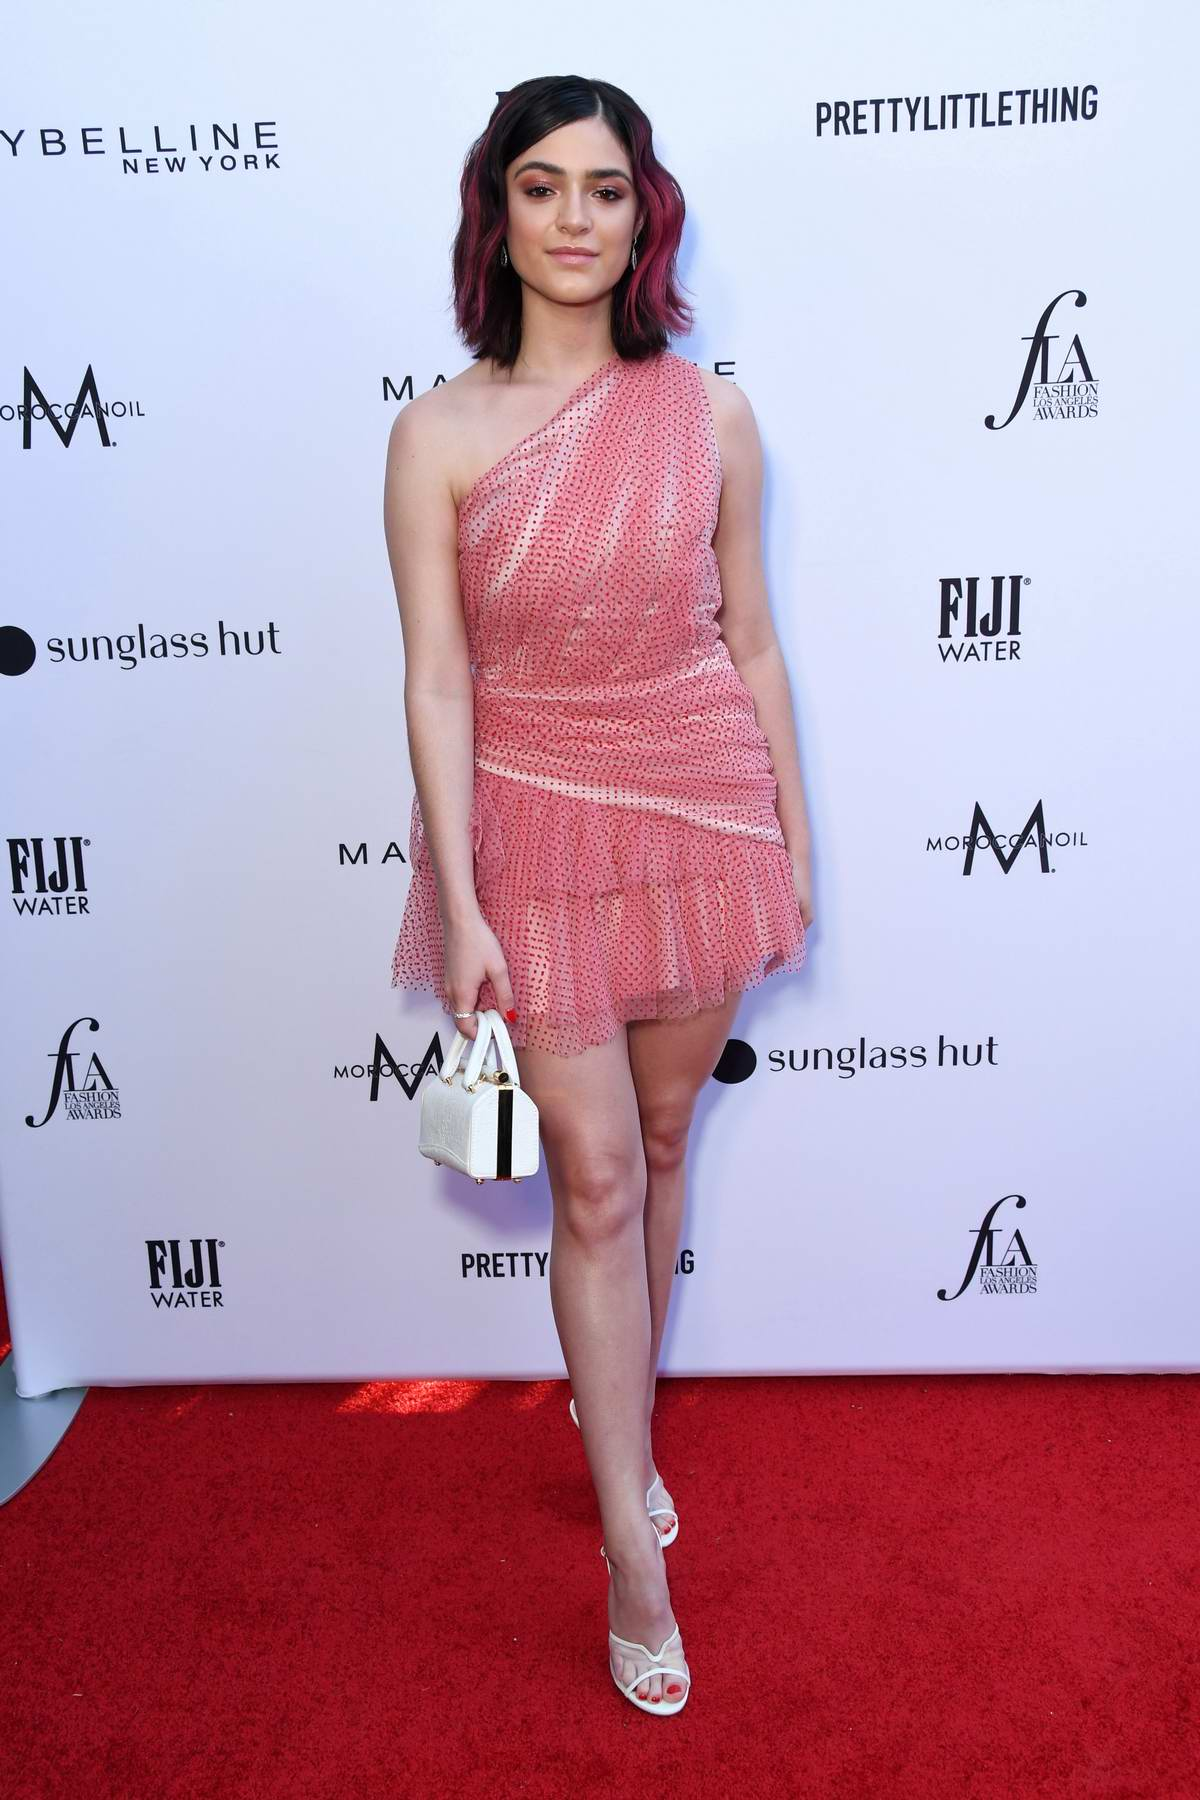 Luna Blaise attends The Daily Front Row's 5th Annual Fashion Awards at The Beverly Hills Hotel in Los Angeles